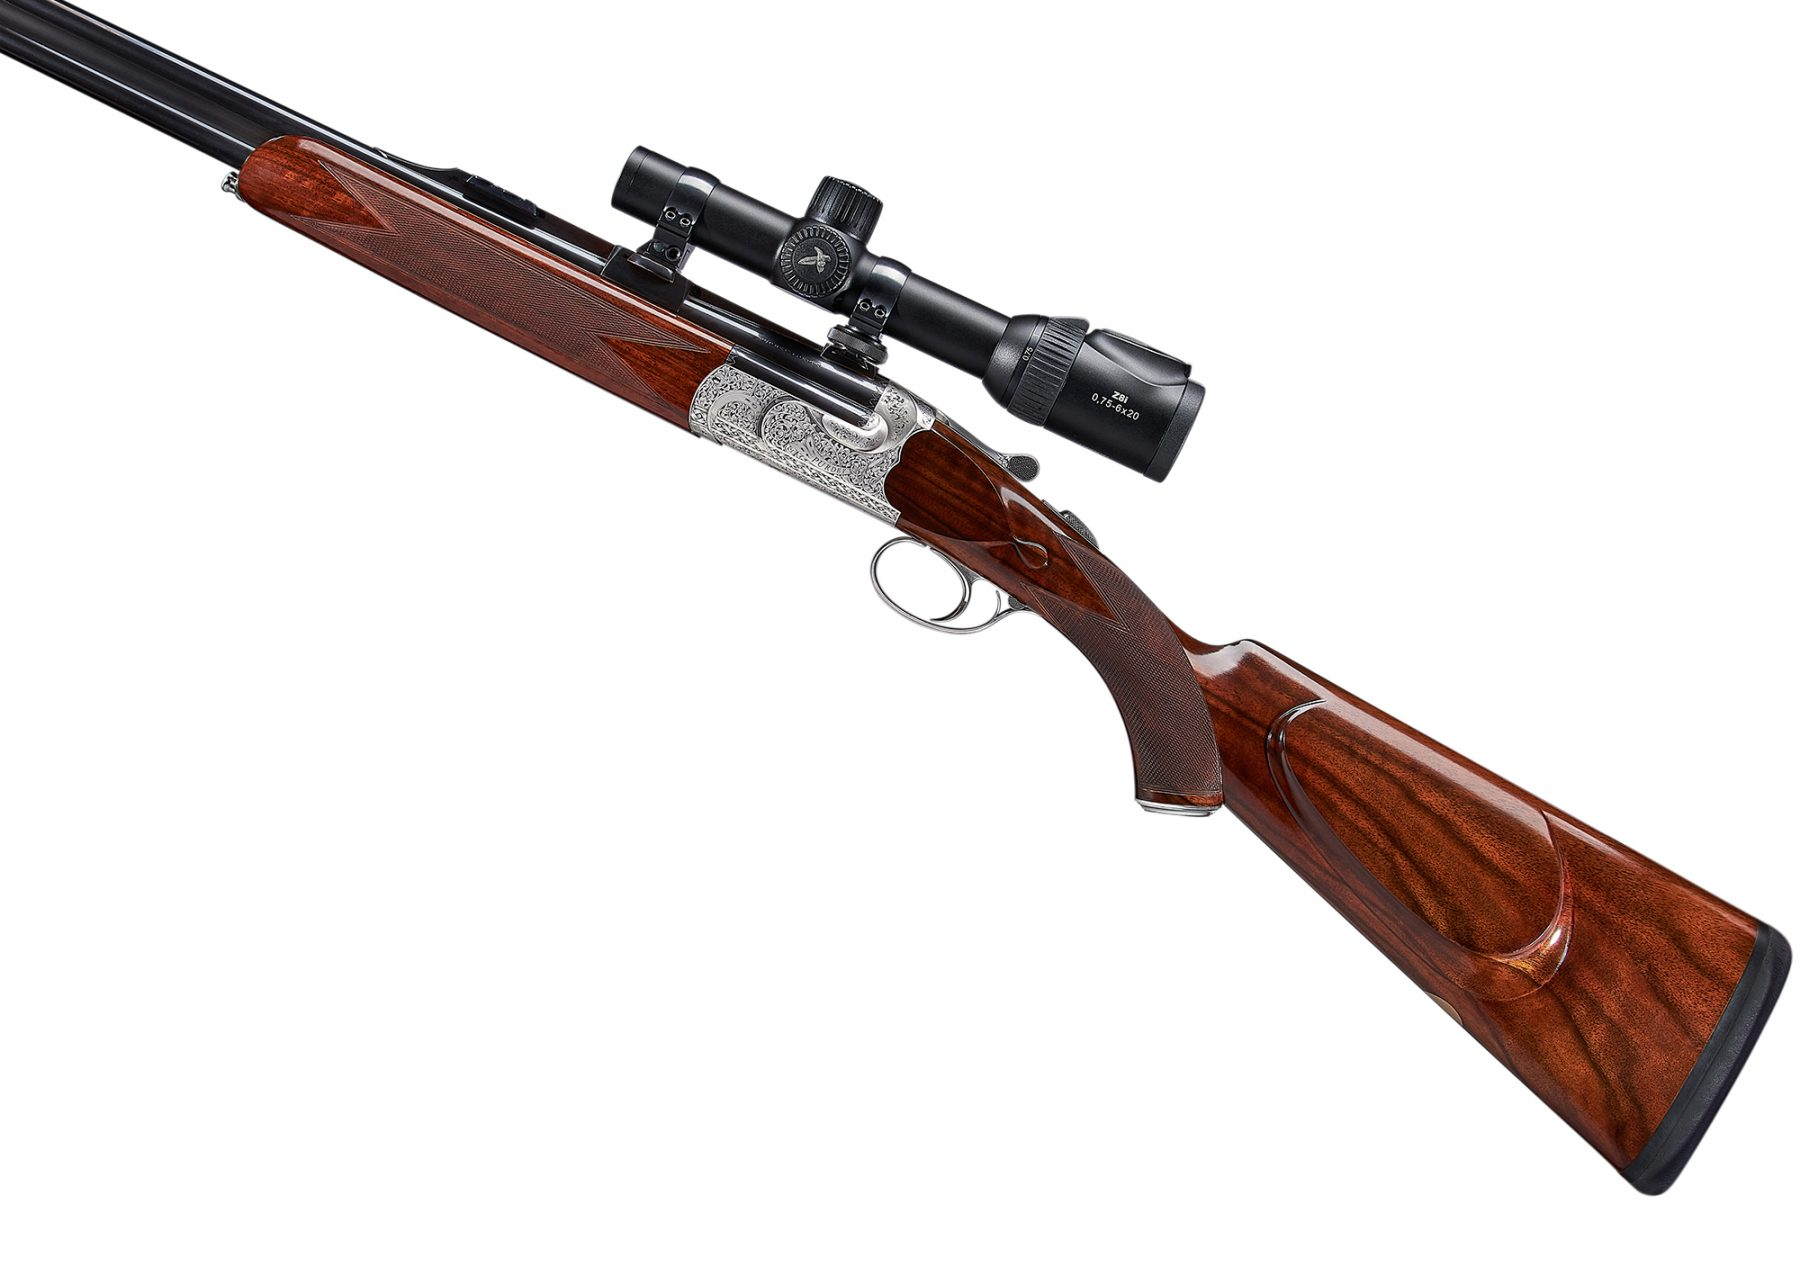 Purdey Over-and-Under Sporter Rifle